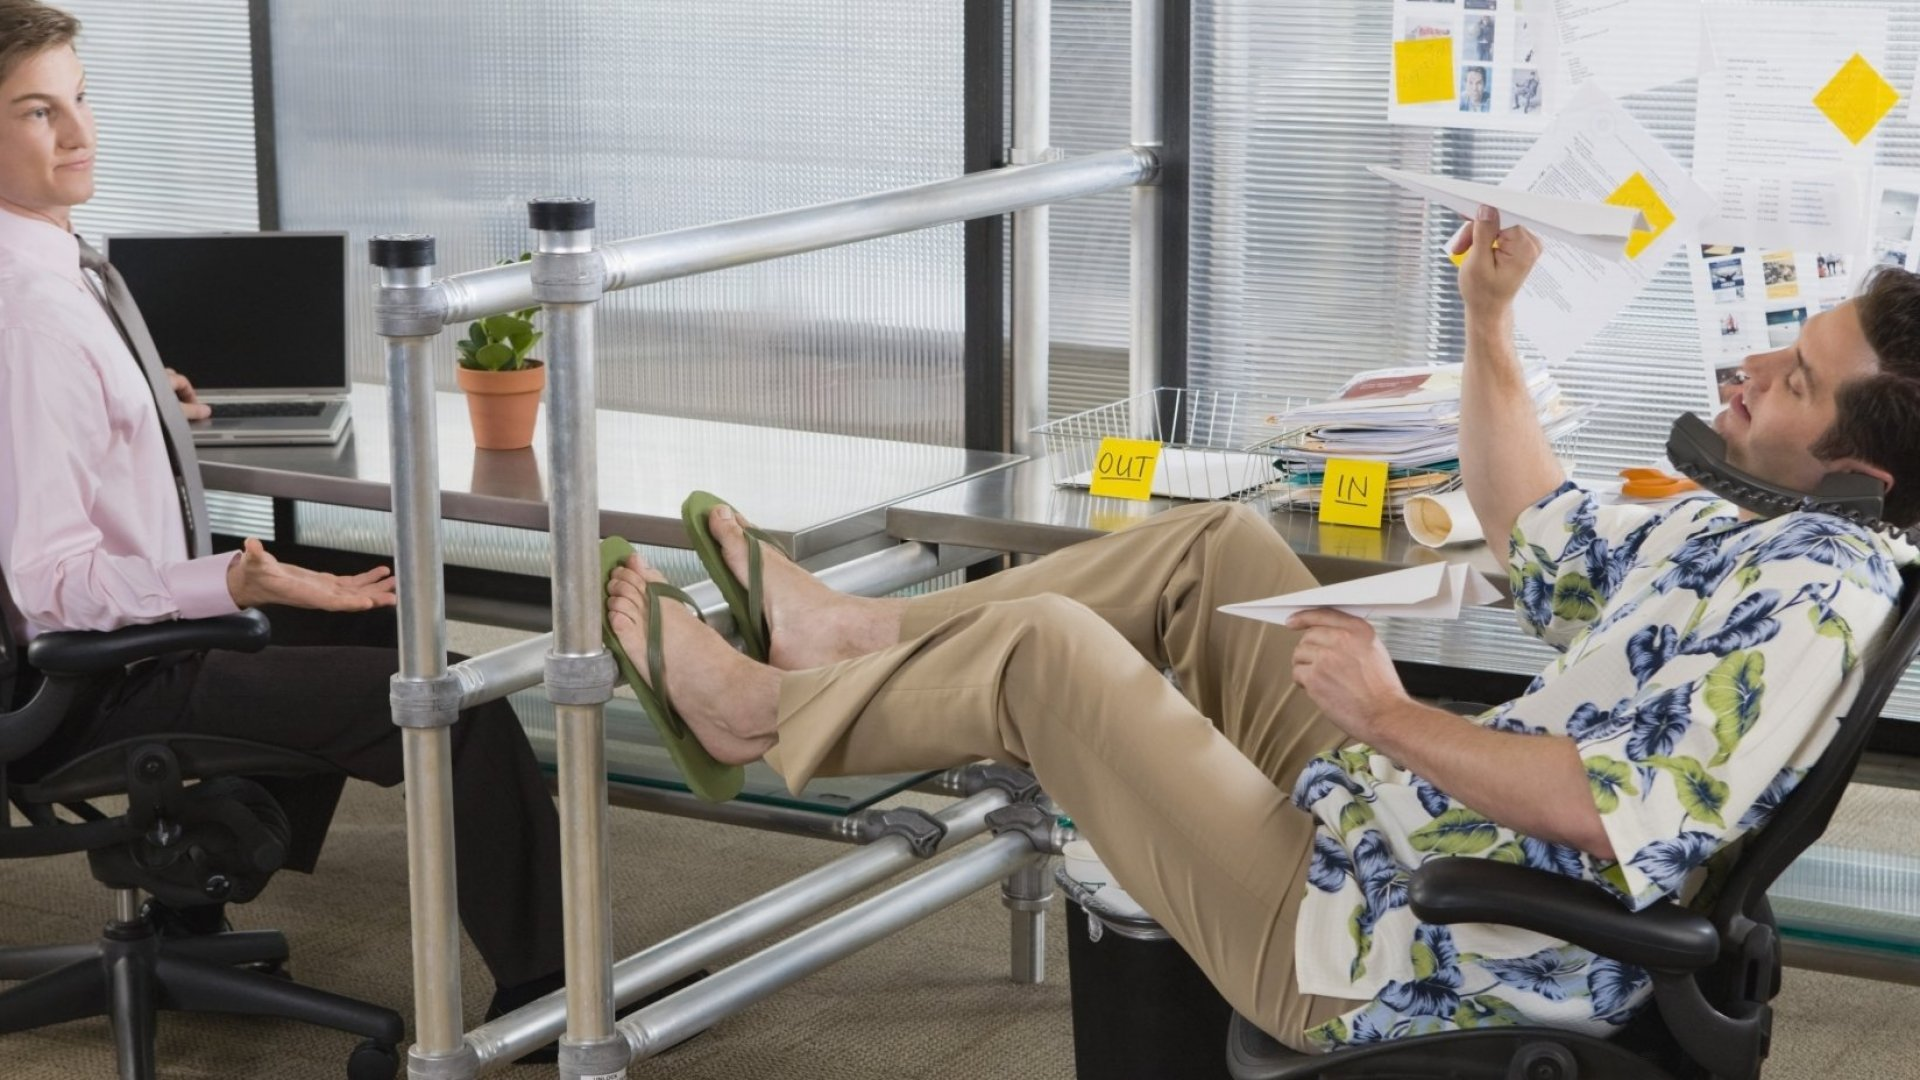 The 4 Worst Employee Behaviors and How to Stop Them